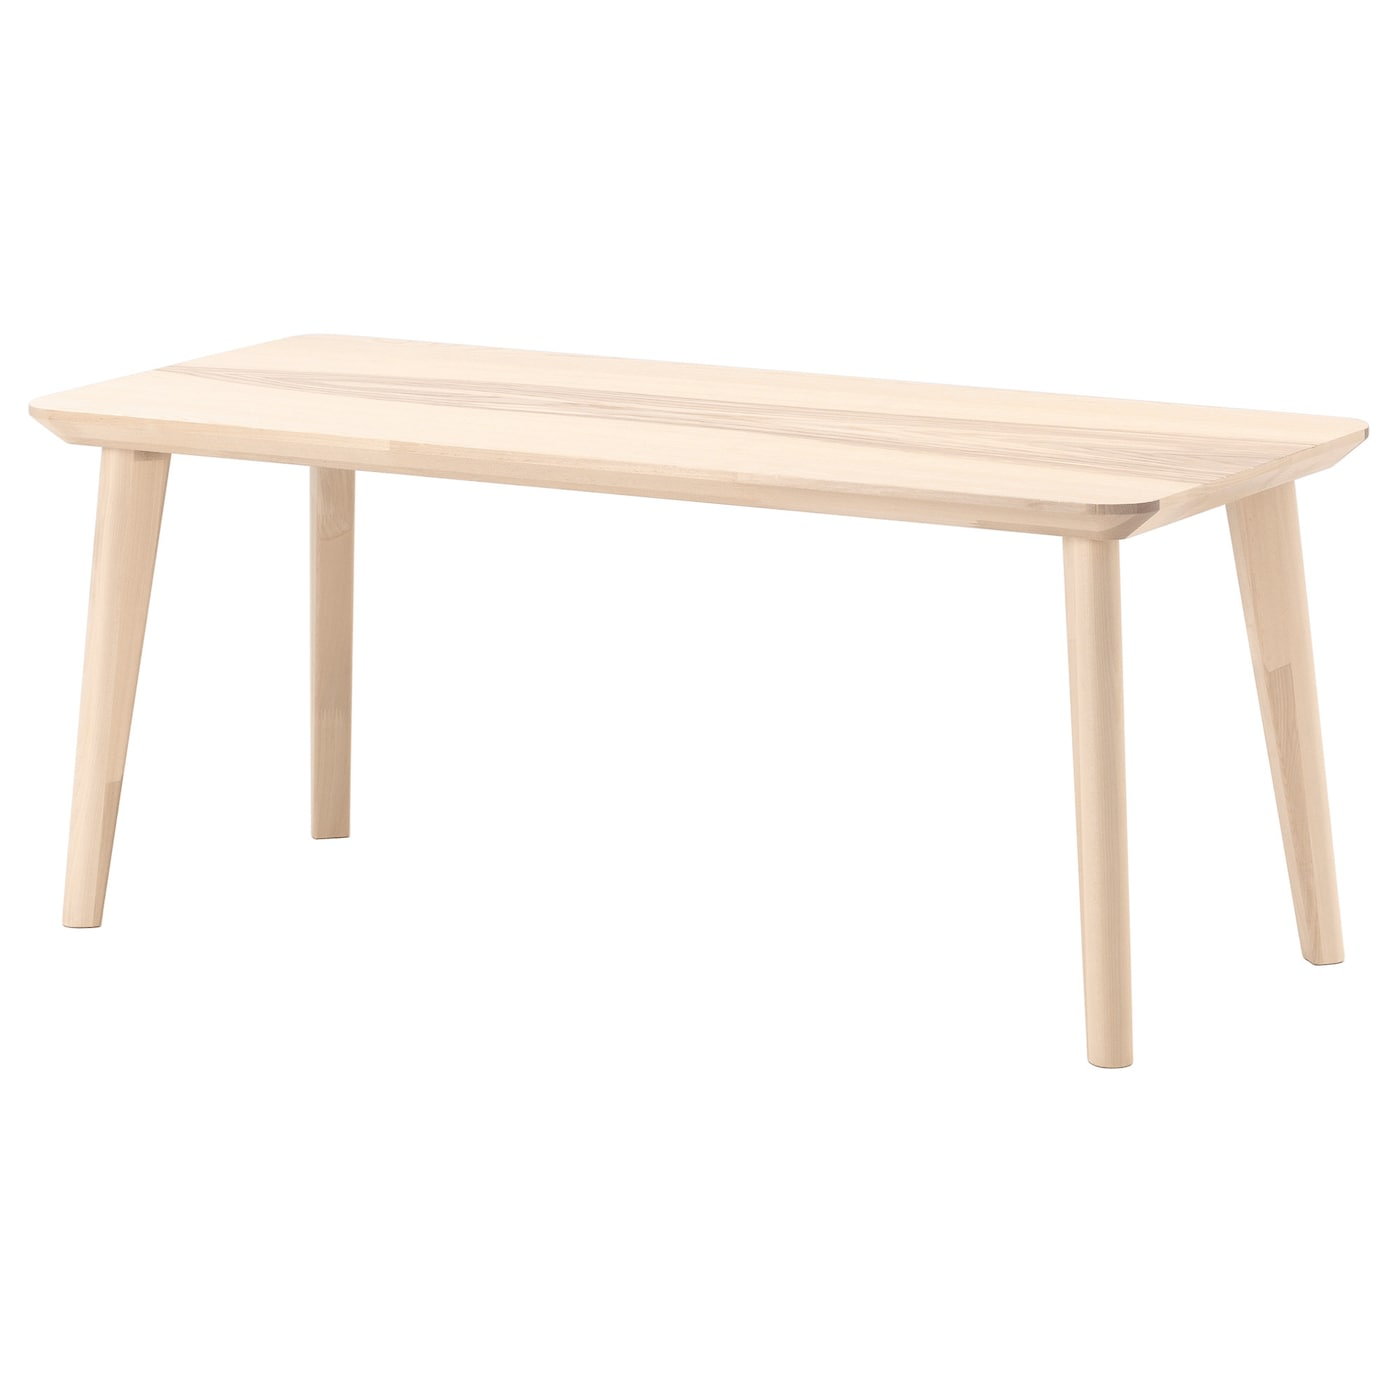 Lisabo coffee table ash veneer 118x50 cm ikea - Table basse verre ikea ...